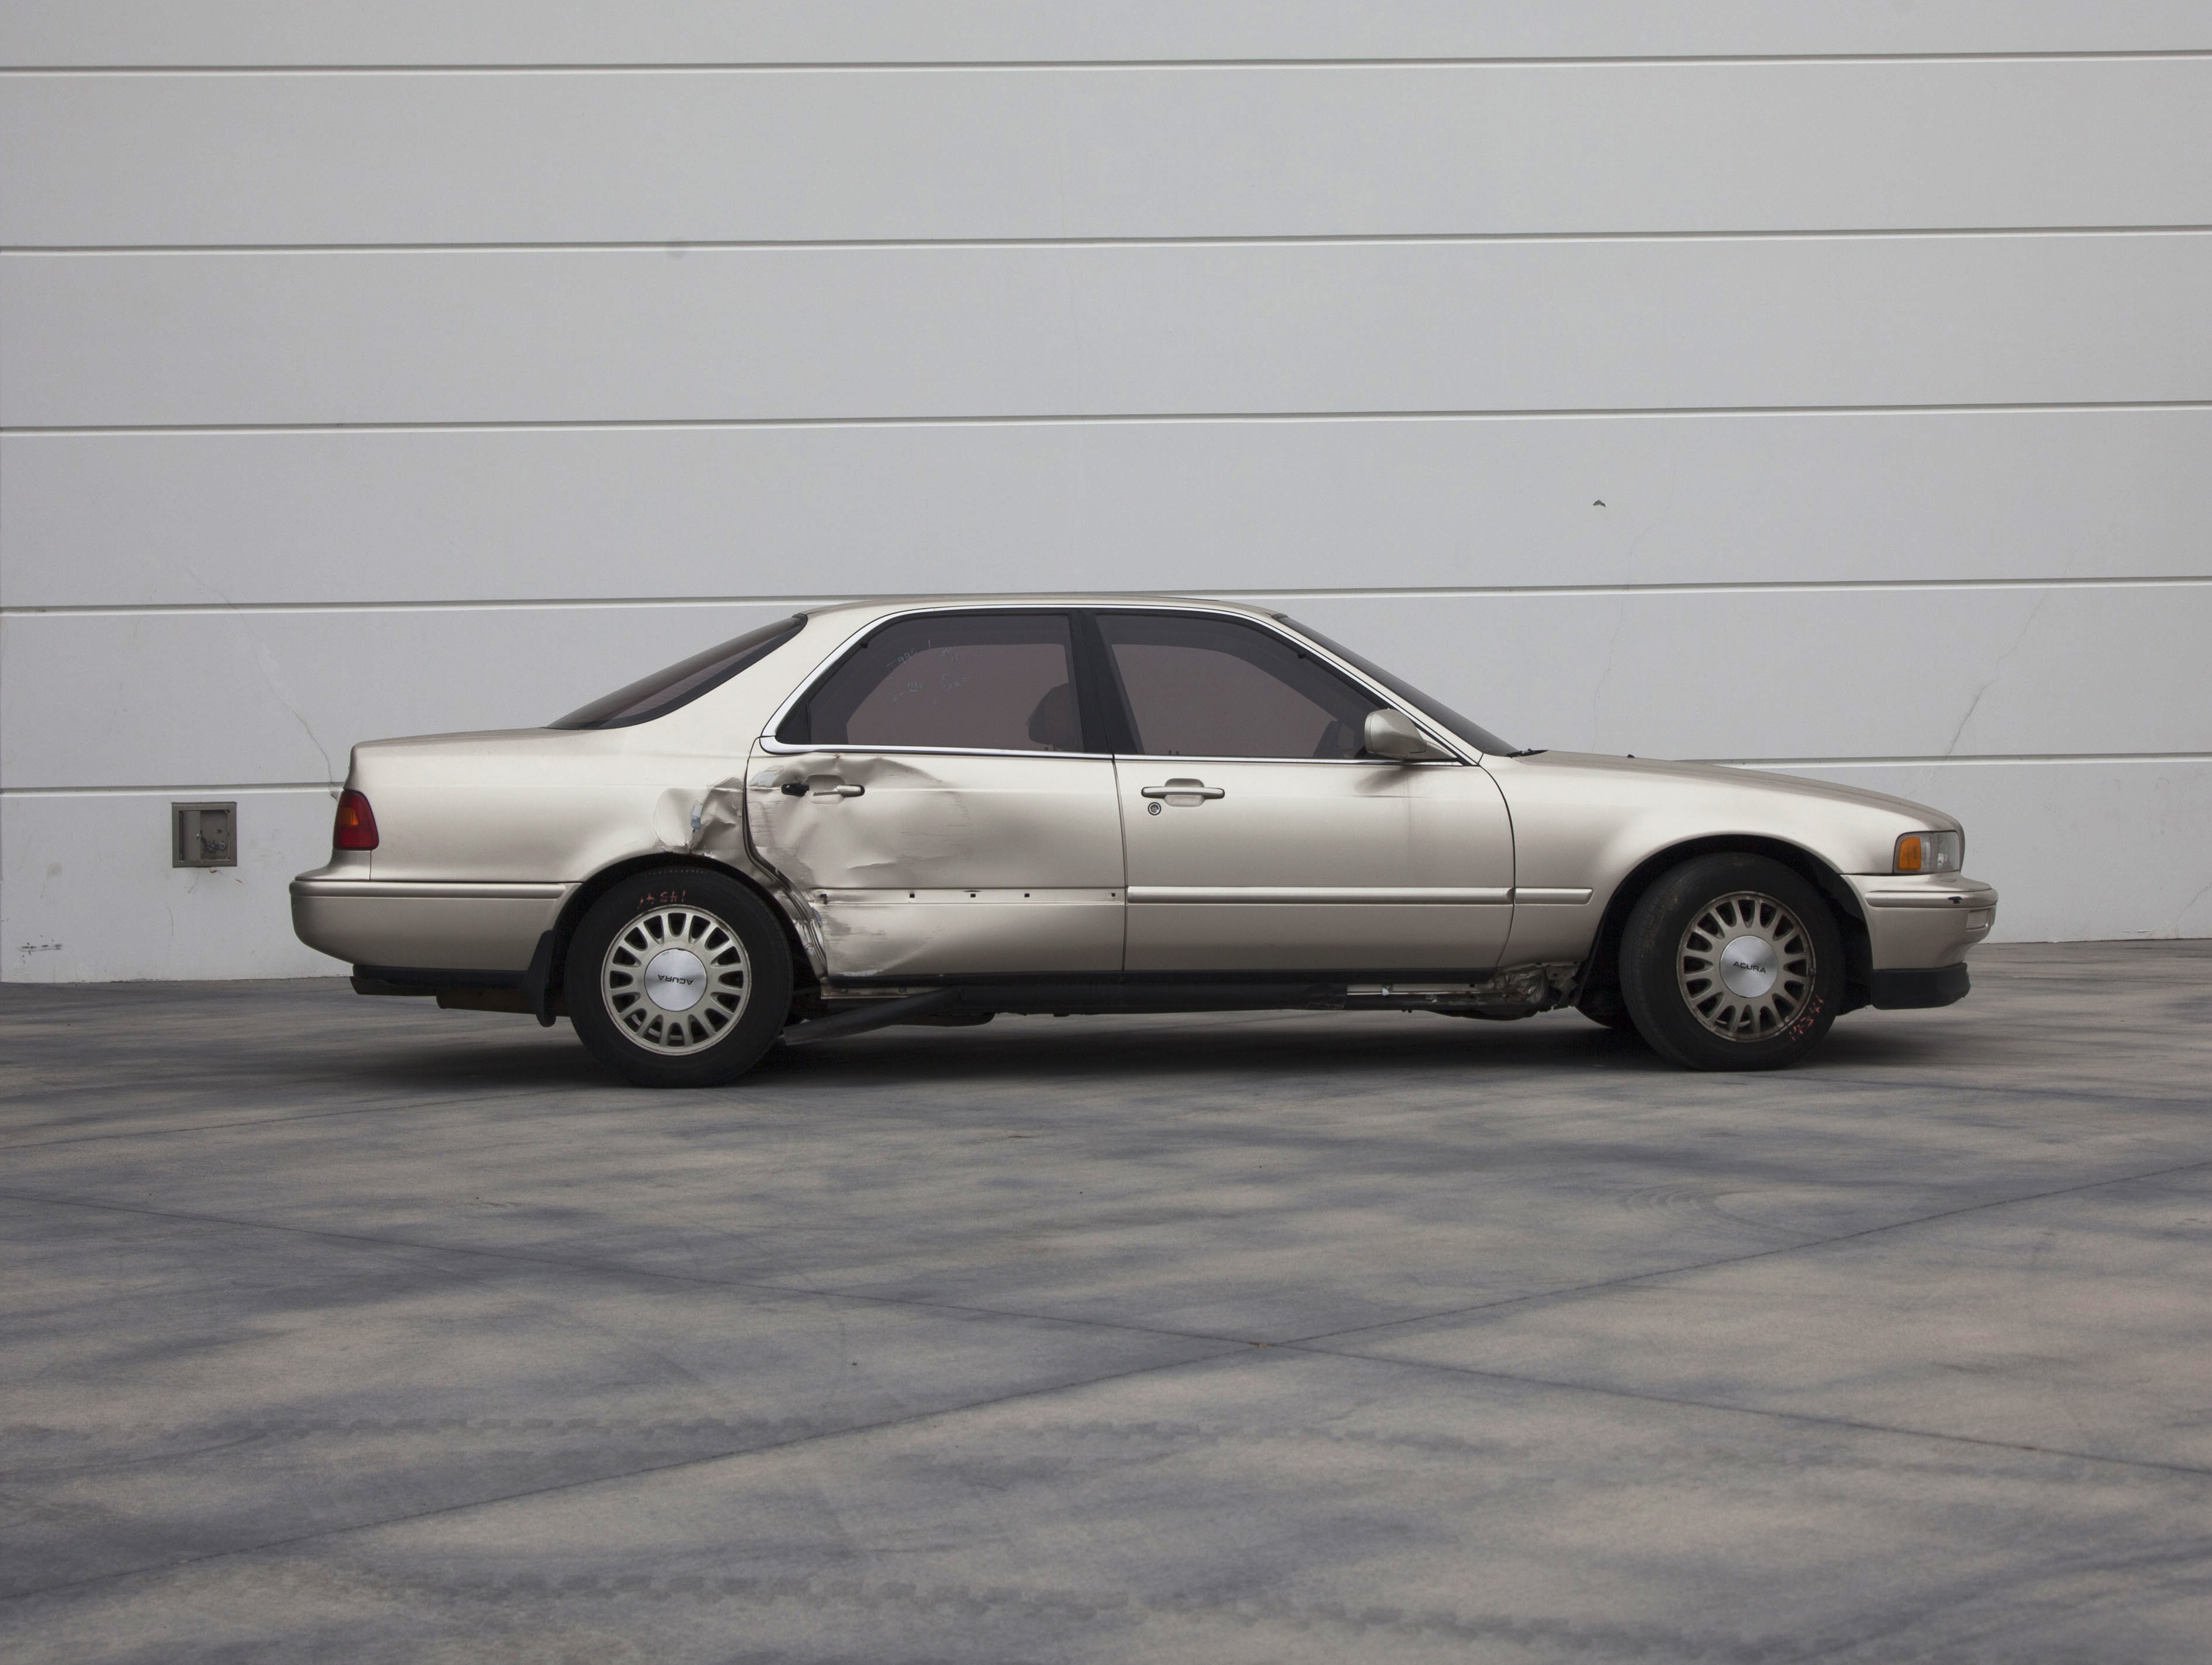 used auto image luxury los of brandon plant acura click salvage parts here angeles city awesome cars